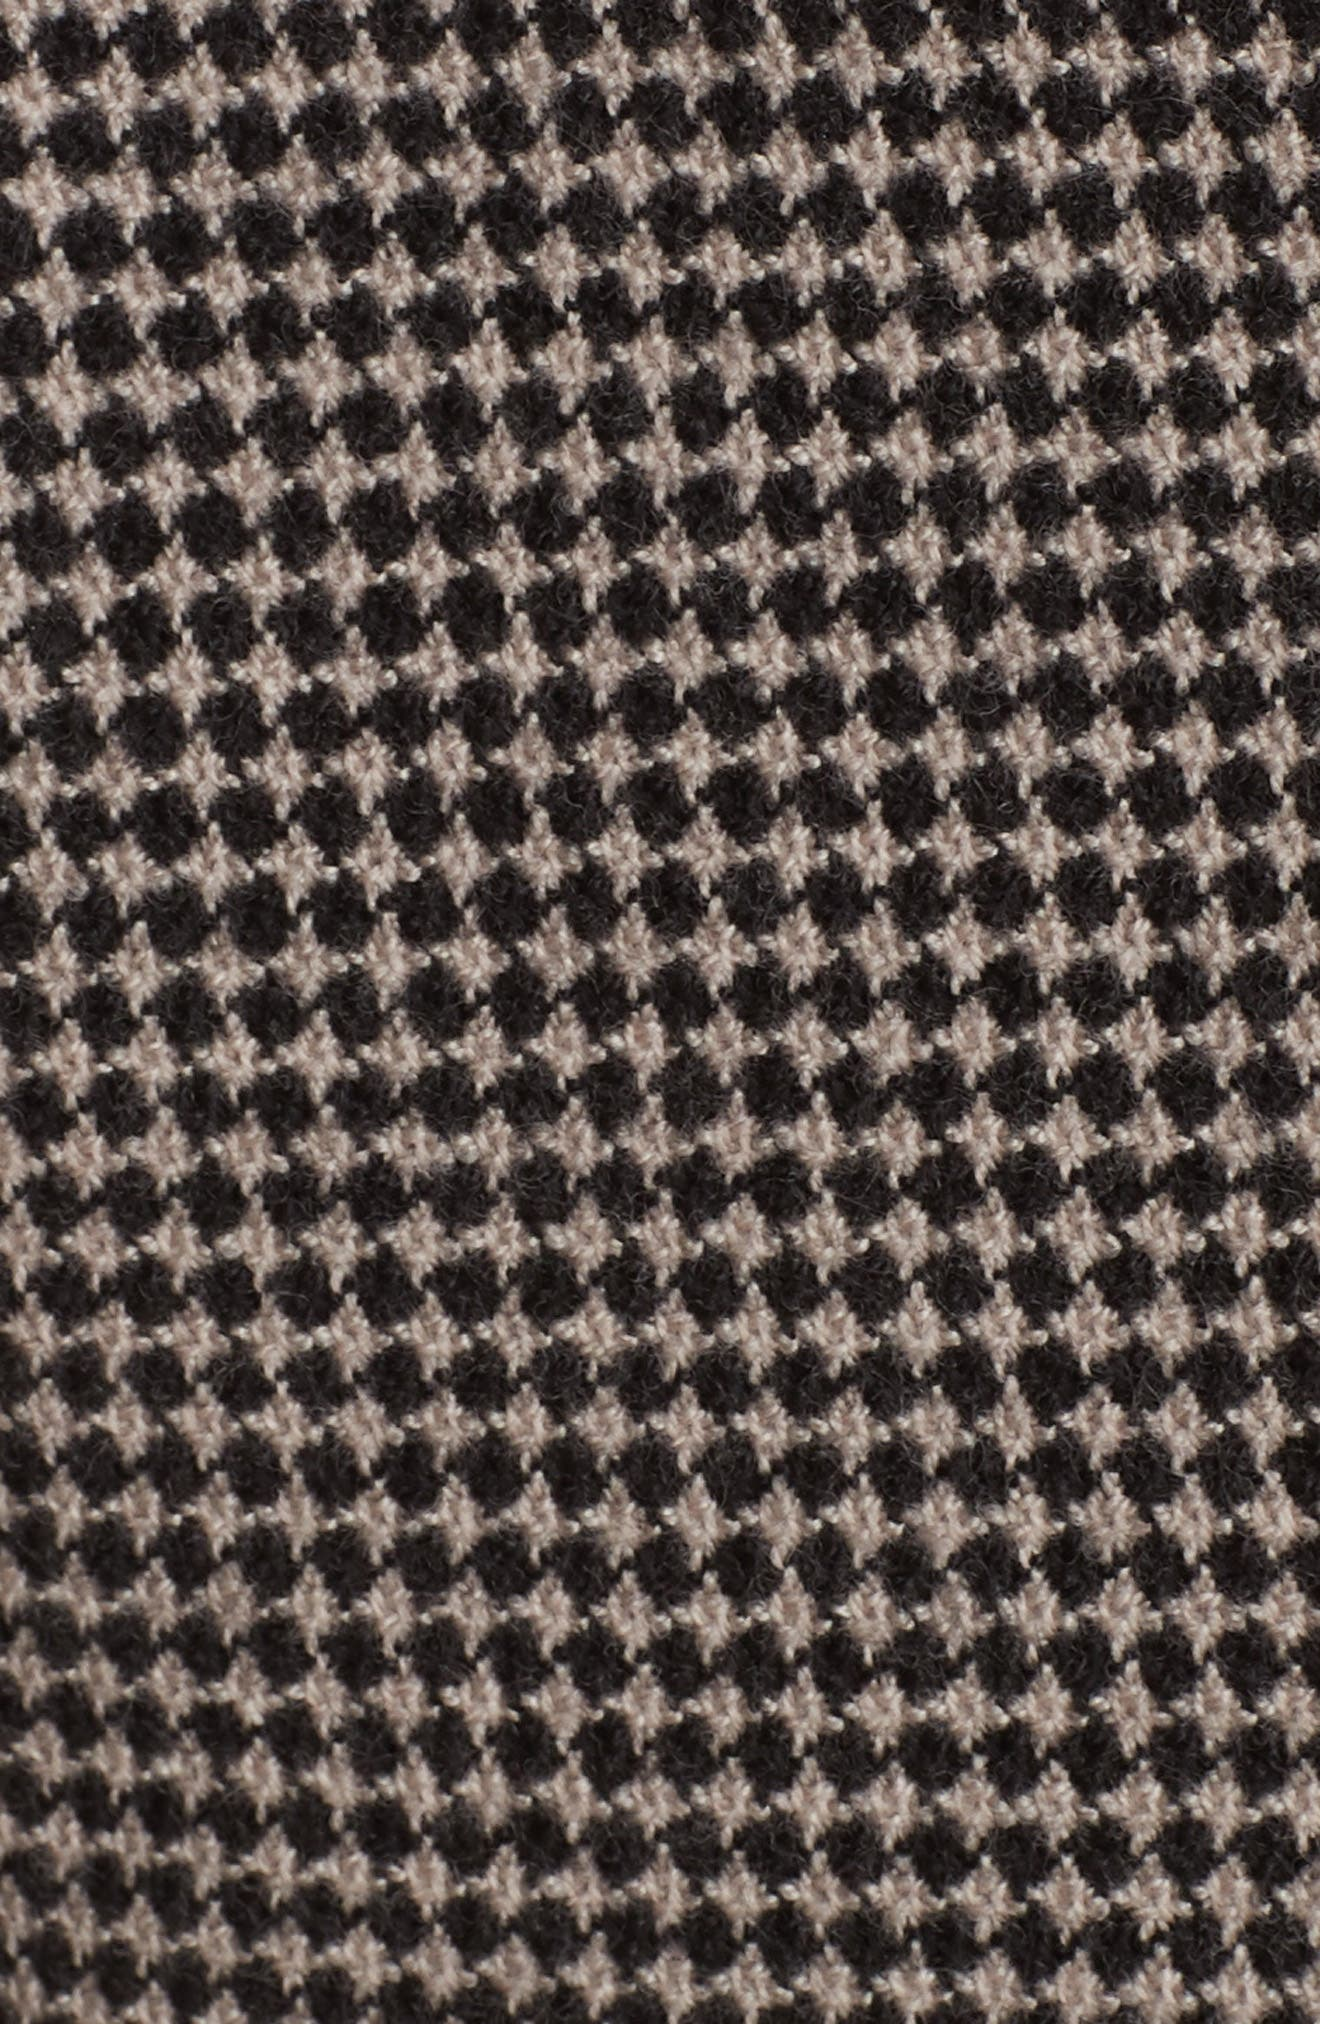 Spigola Wool & Cashmere Jacket,                             Alternate thumbnail 6, color,                             TURTLEDOVE